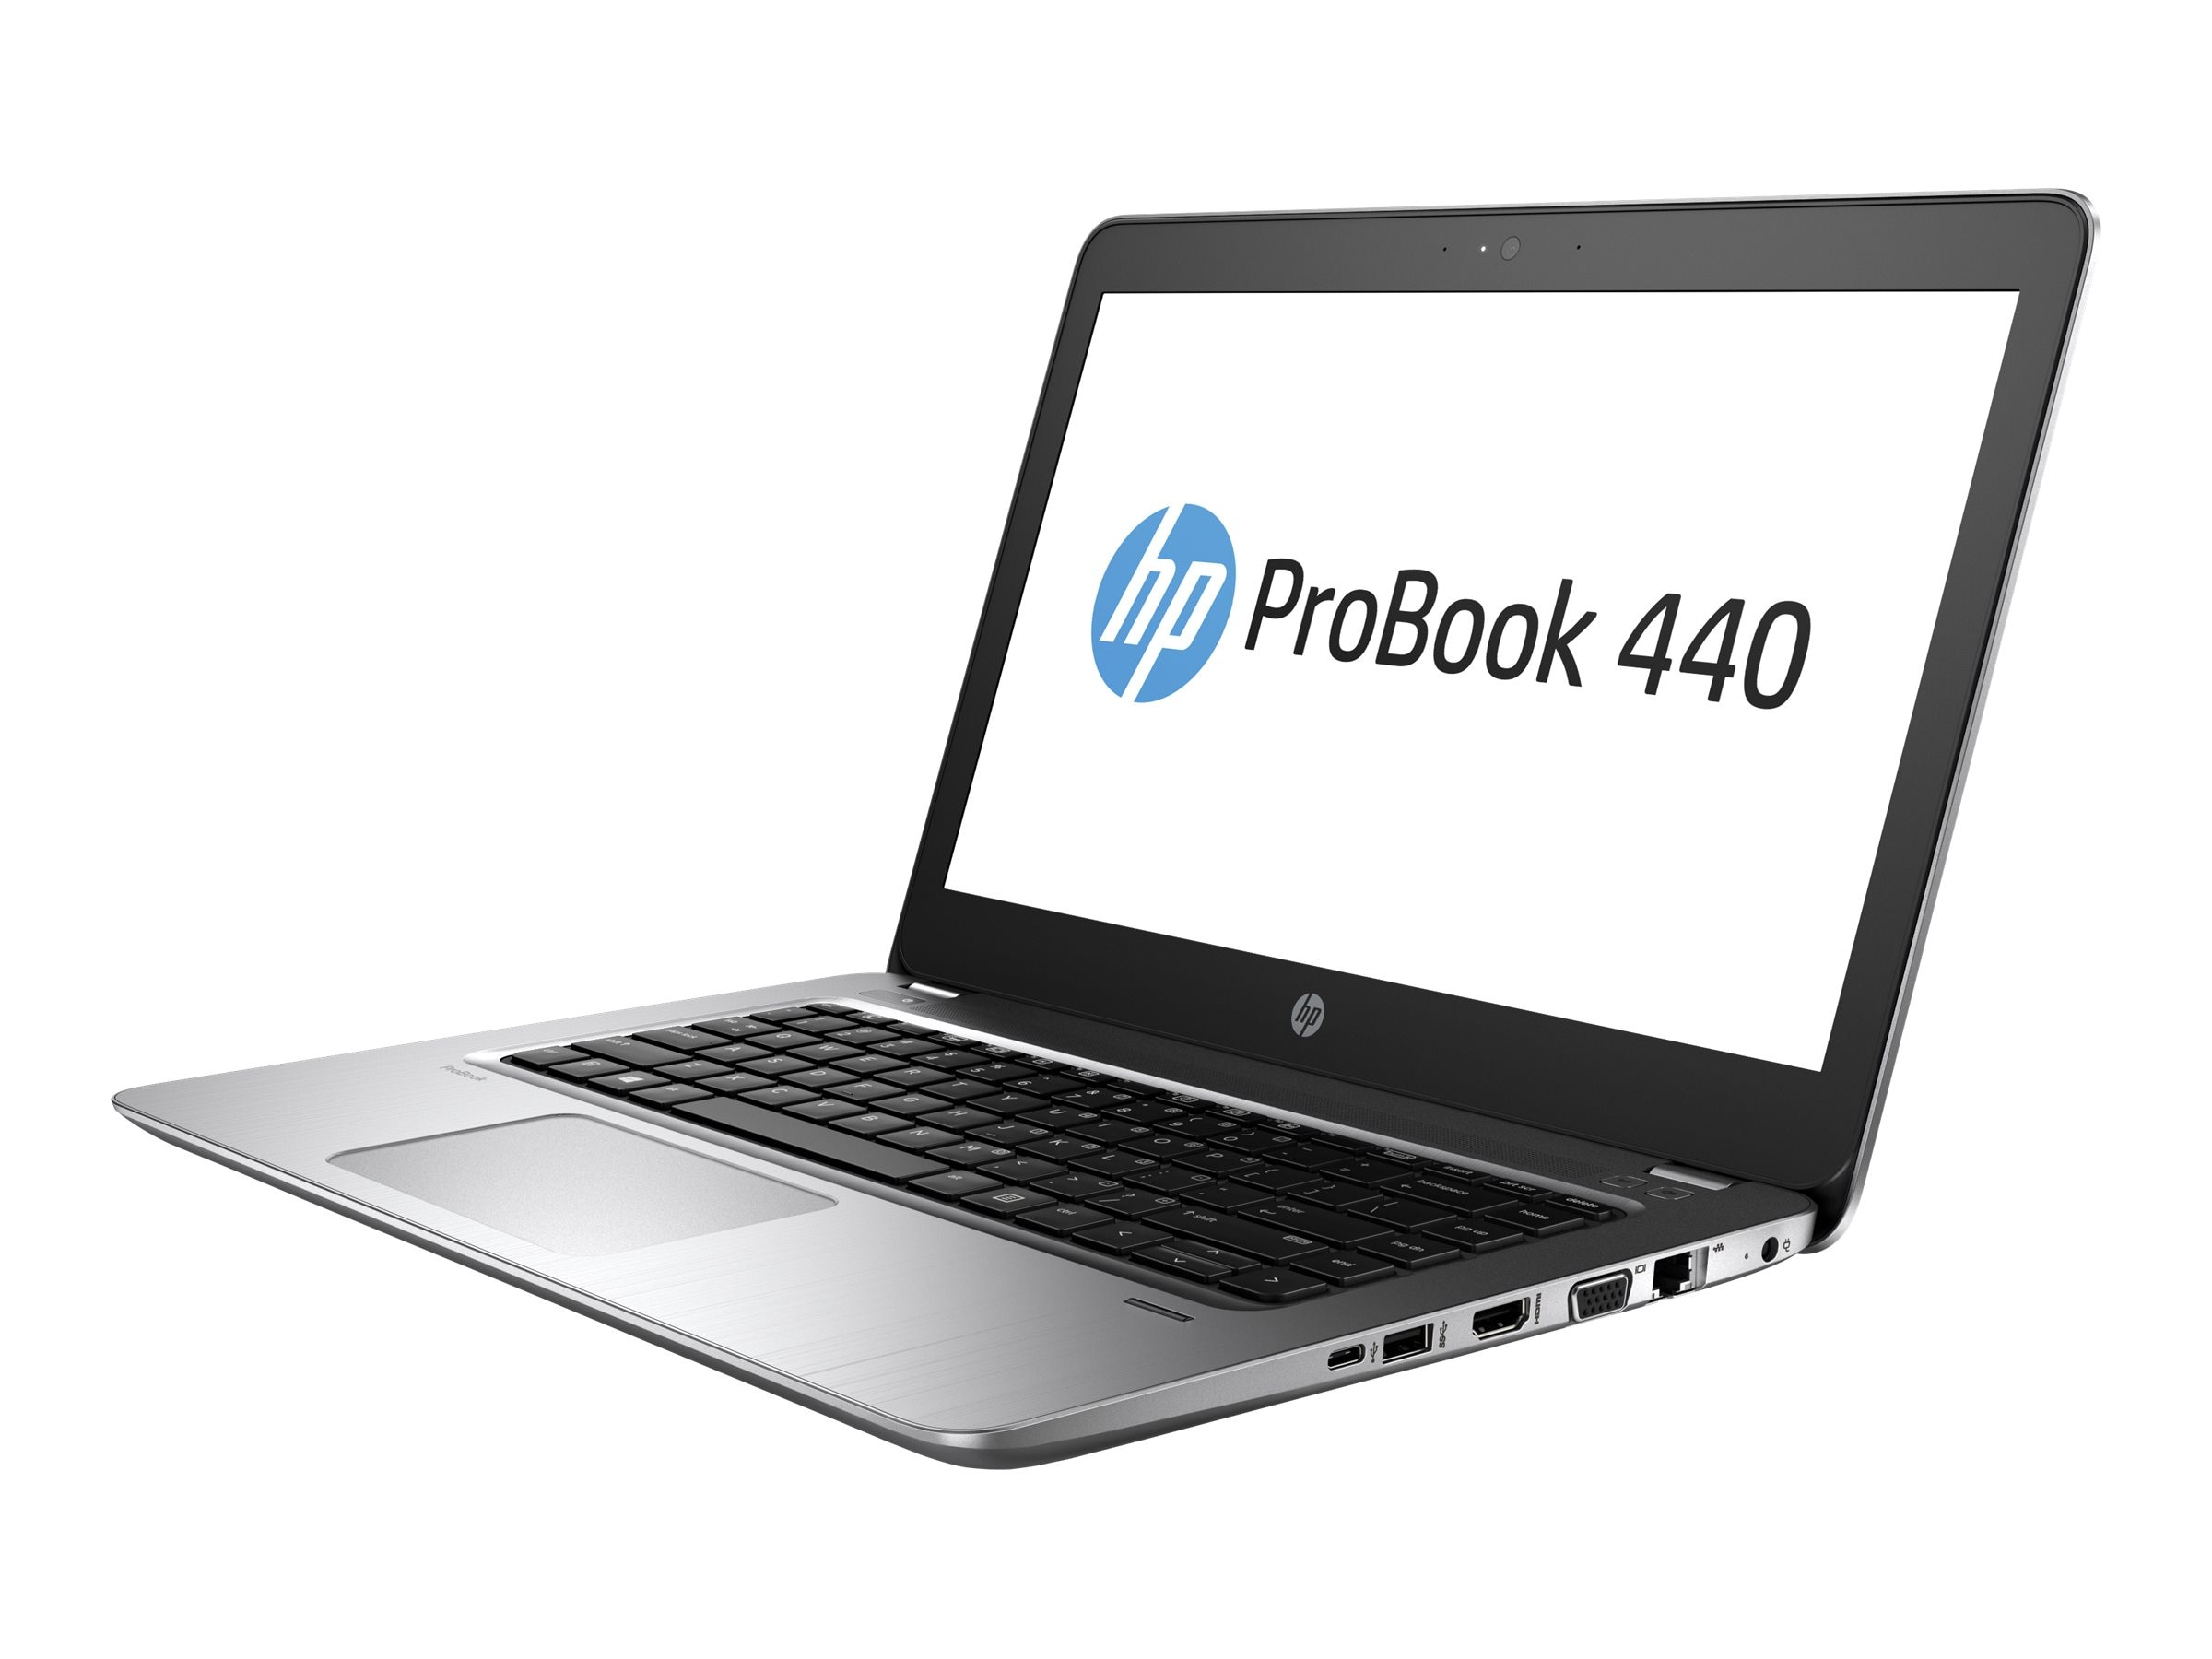 HP ProBook 440 G4 2.4GHz Core i3 14in display